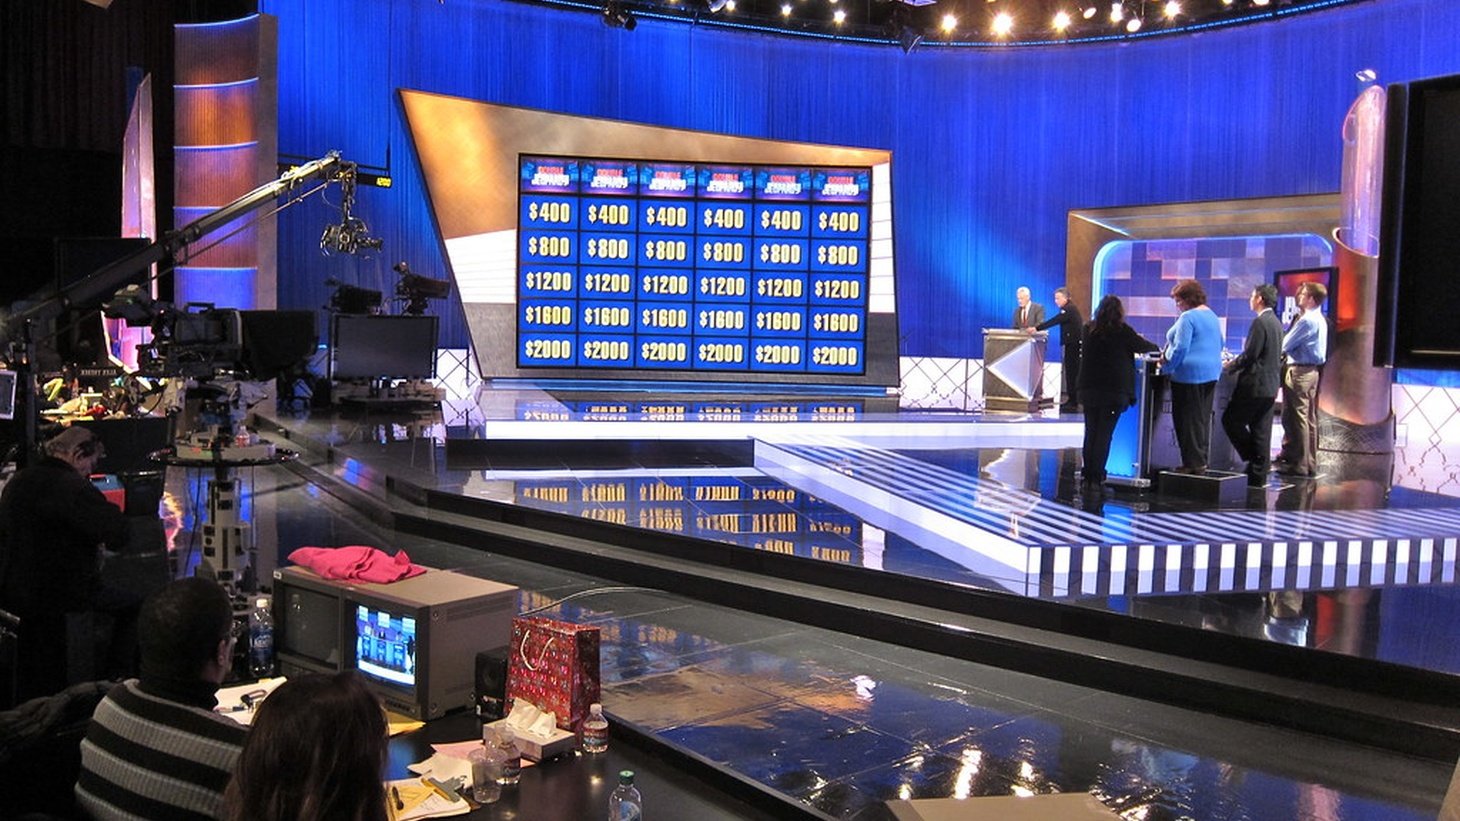 """""""Jeopardy!"""" will soon have a new host, but some fans are upset by the choice of Mike Richards, who is the executive producer of the game show."""